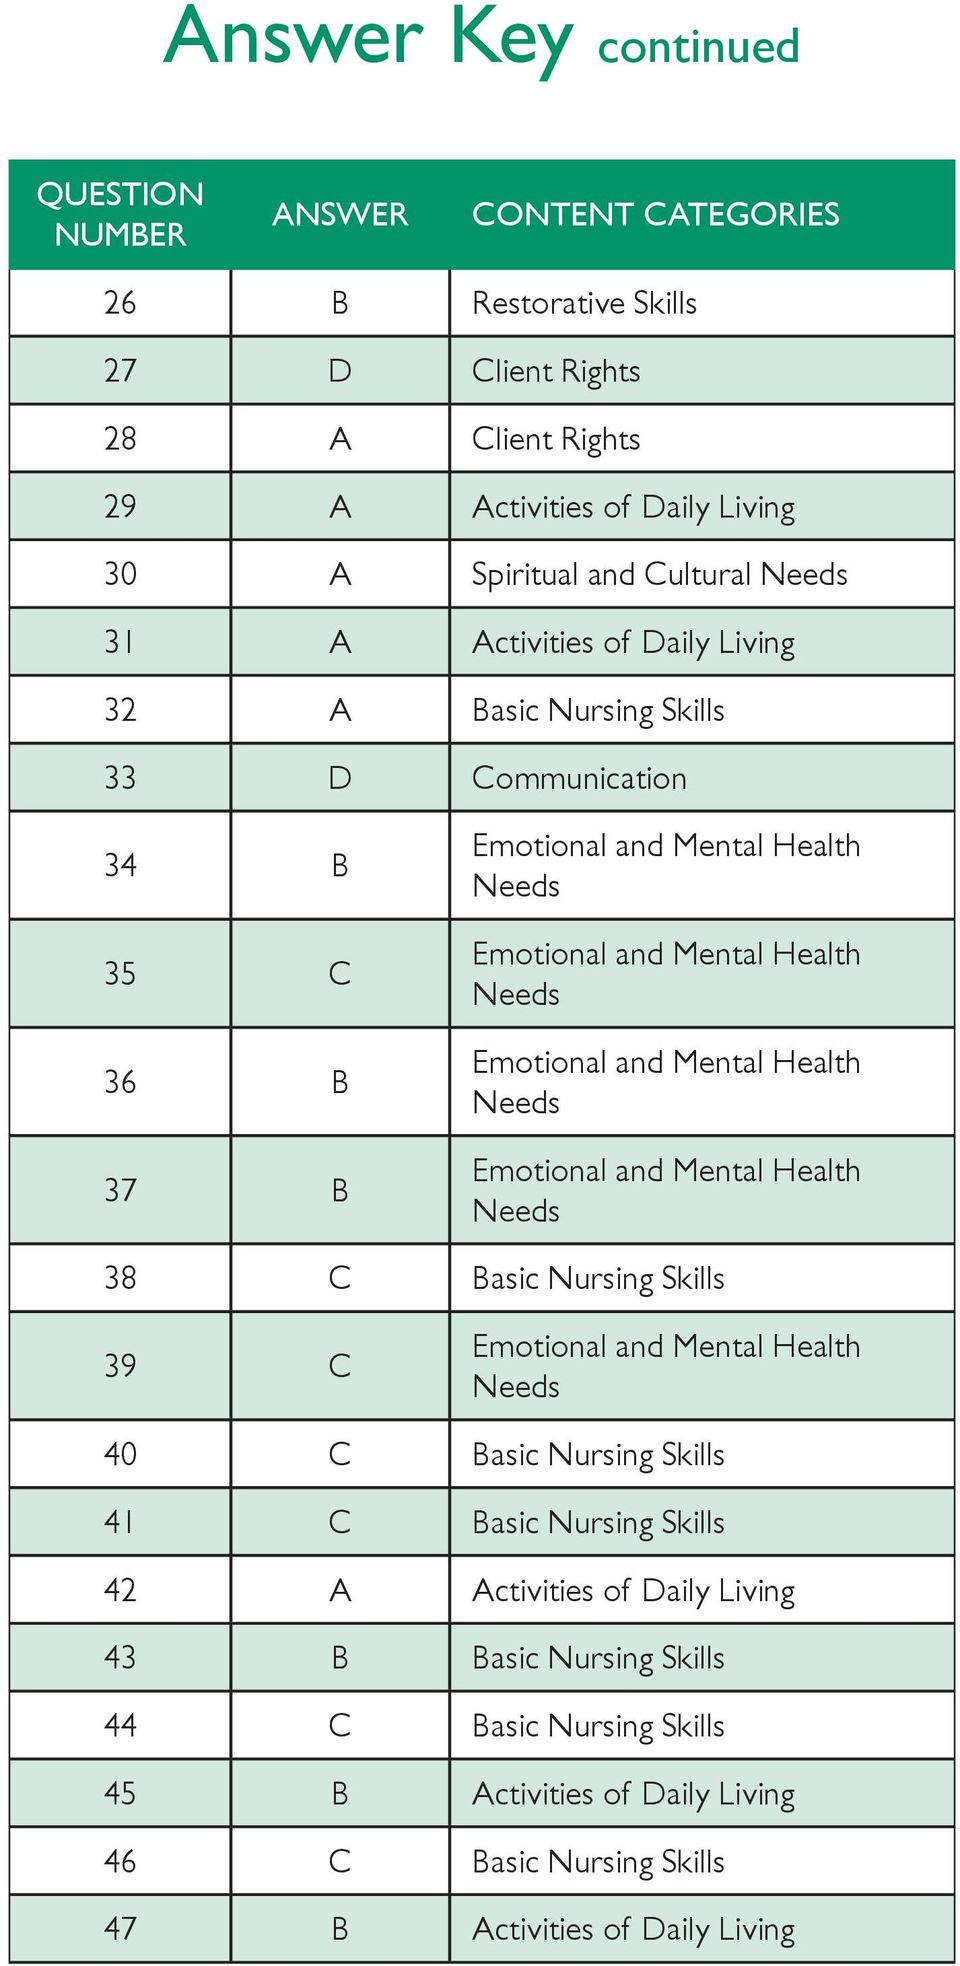 Needs Emotional and Mental Health Needs Emotional and Mental Health Needs 38 C Basic Nursing Skills 39 C Emotional and Mental Health Needs 40 C Basic Nursing Skills 41 C Basic